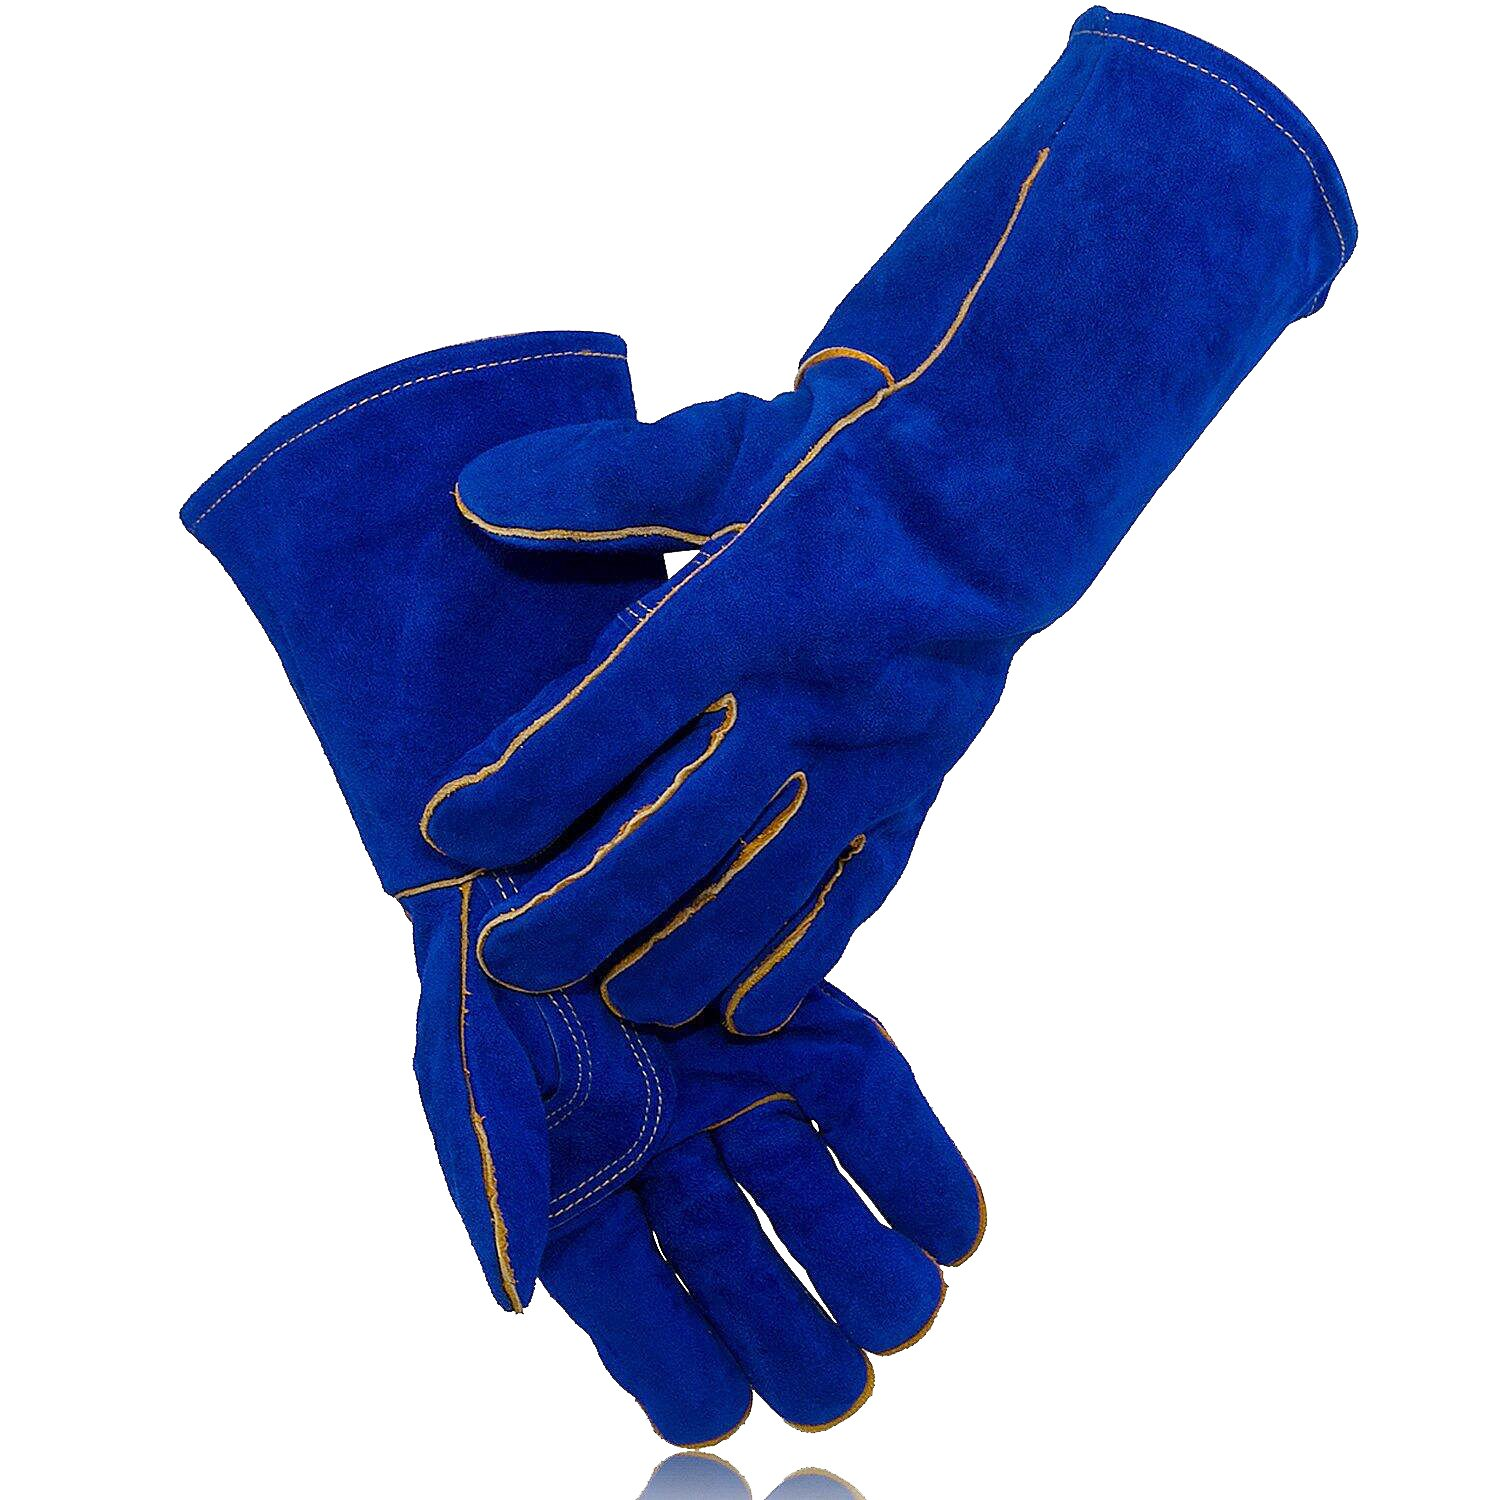 KIM YUAN Leather Welding Gloves - Heat/Fire Resistant,Perfect for Gardening/Oven/Grill/Mig/Fireplace/Stove/Pot Holder/Tig Welder/Animal Handling/BBQ - 14inches